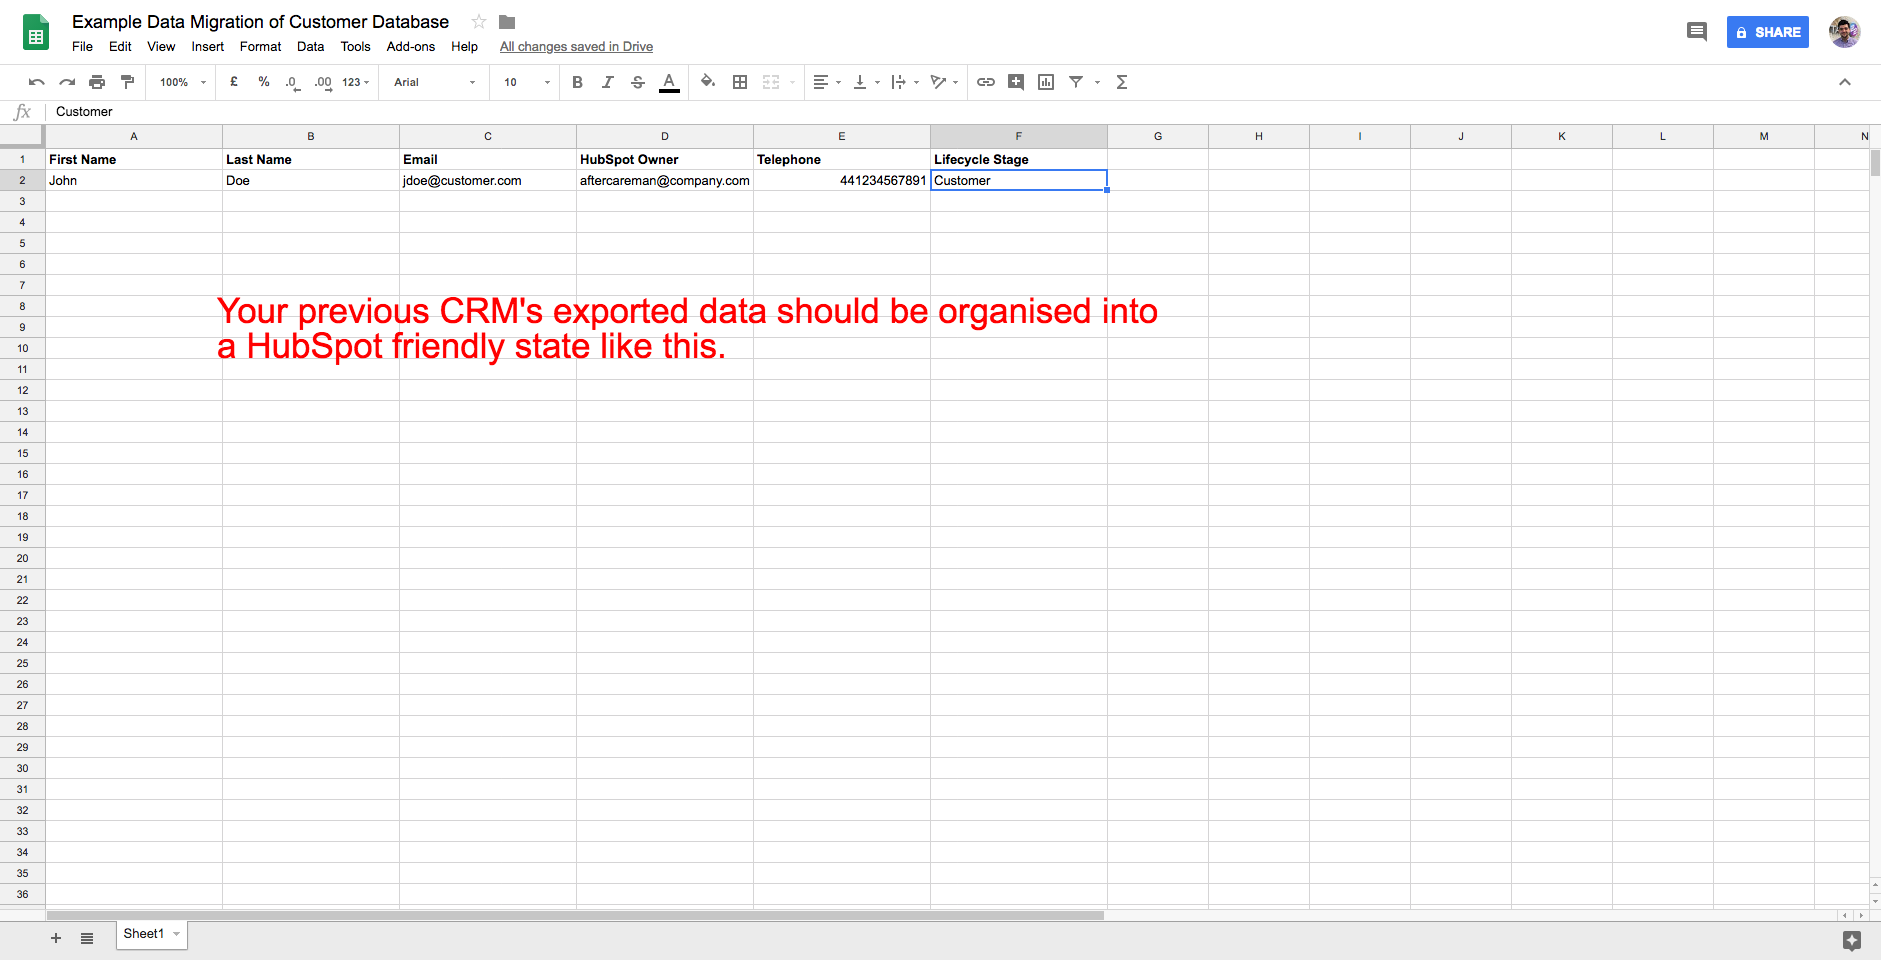 HubSpot Friendly data spreadsheet